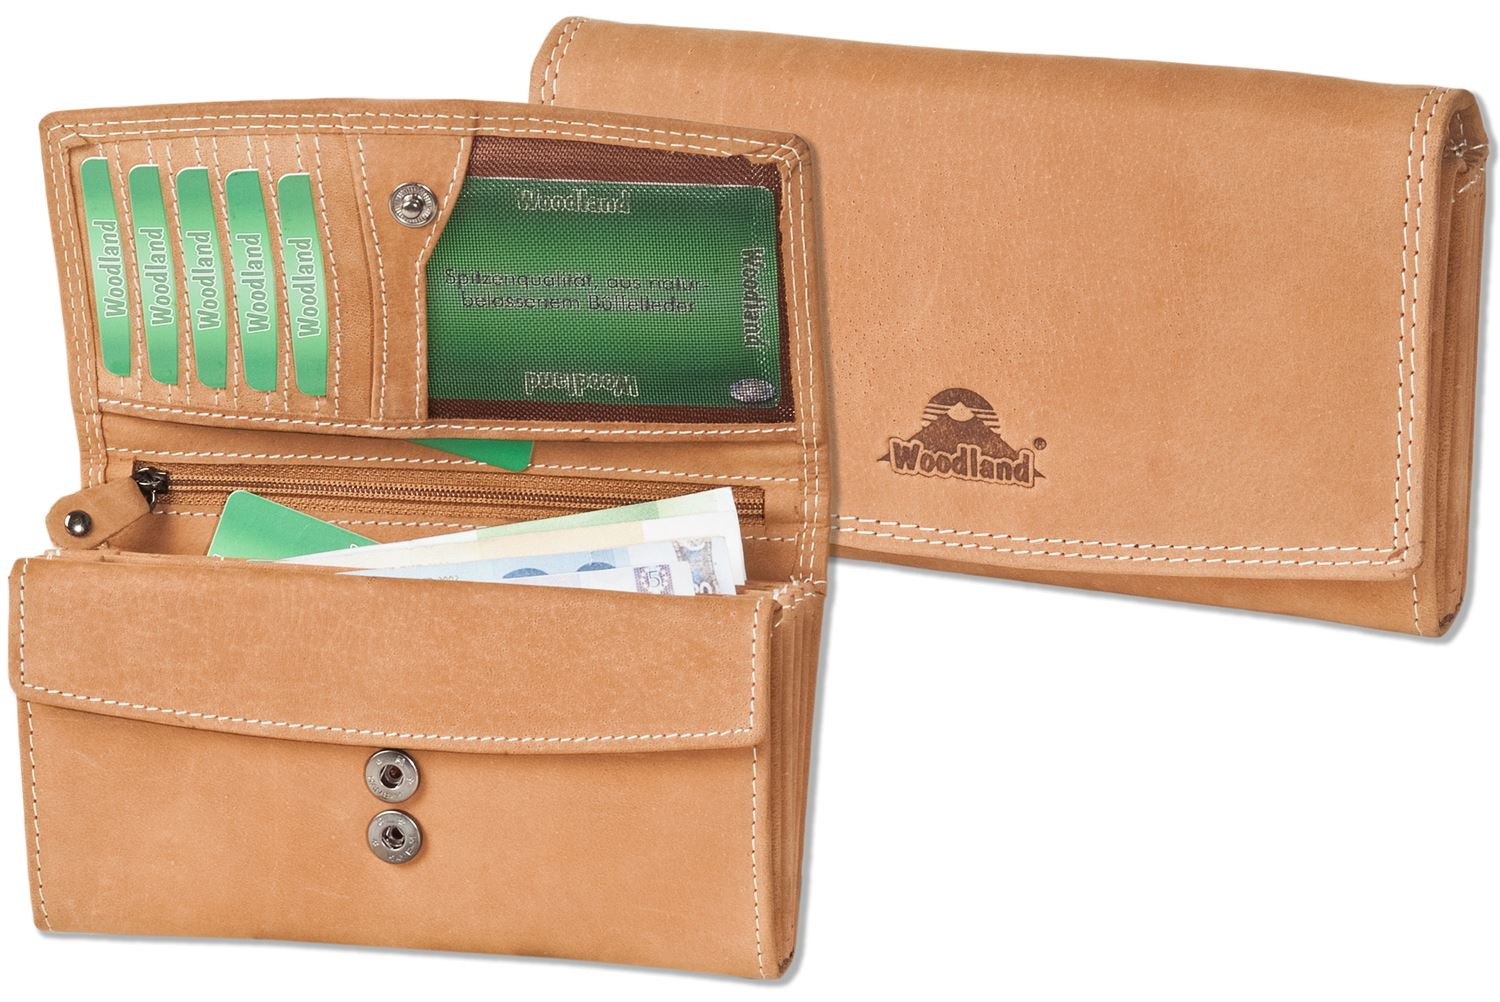 Woodland Especially Flat Women/'s Wallet in Brown from Untreated Leather